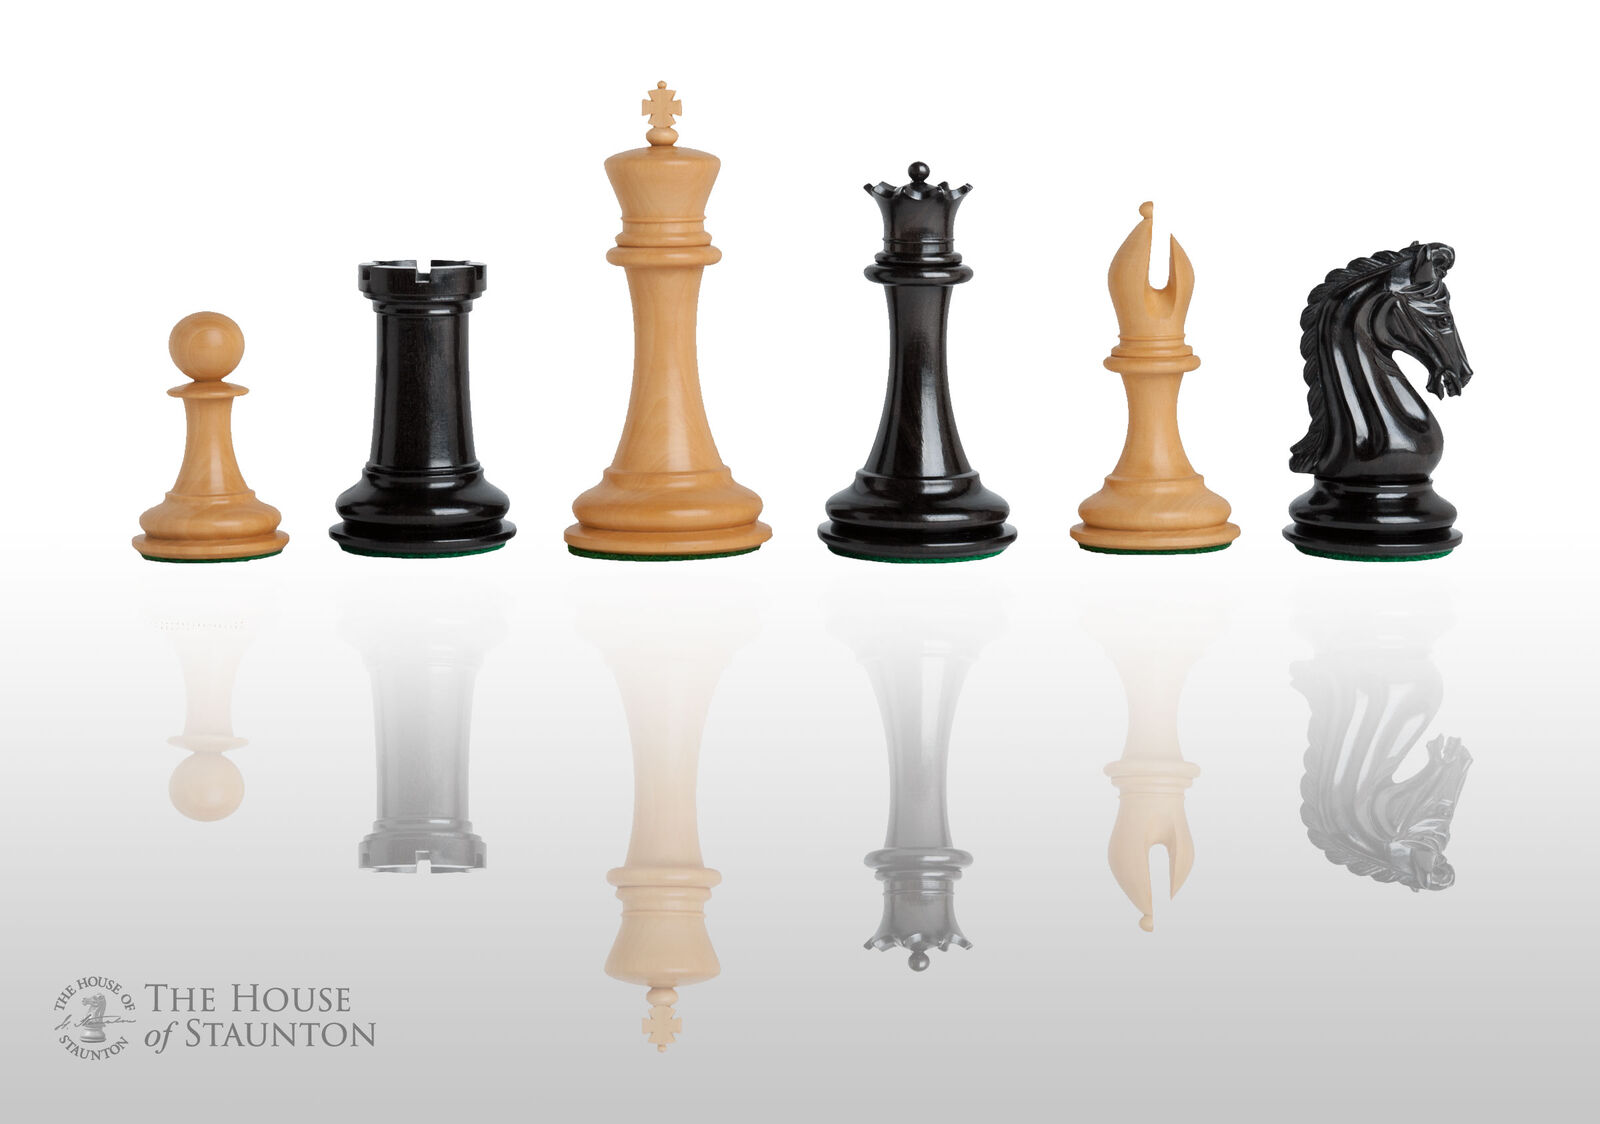 USCF Sales The Imperial Collector Luxury Chess Set - Pieces Only - 4.0  King - G